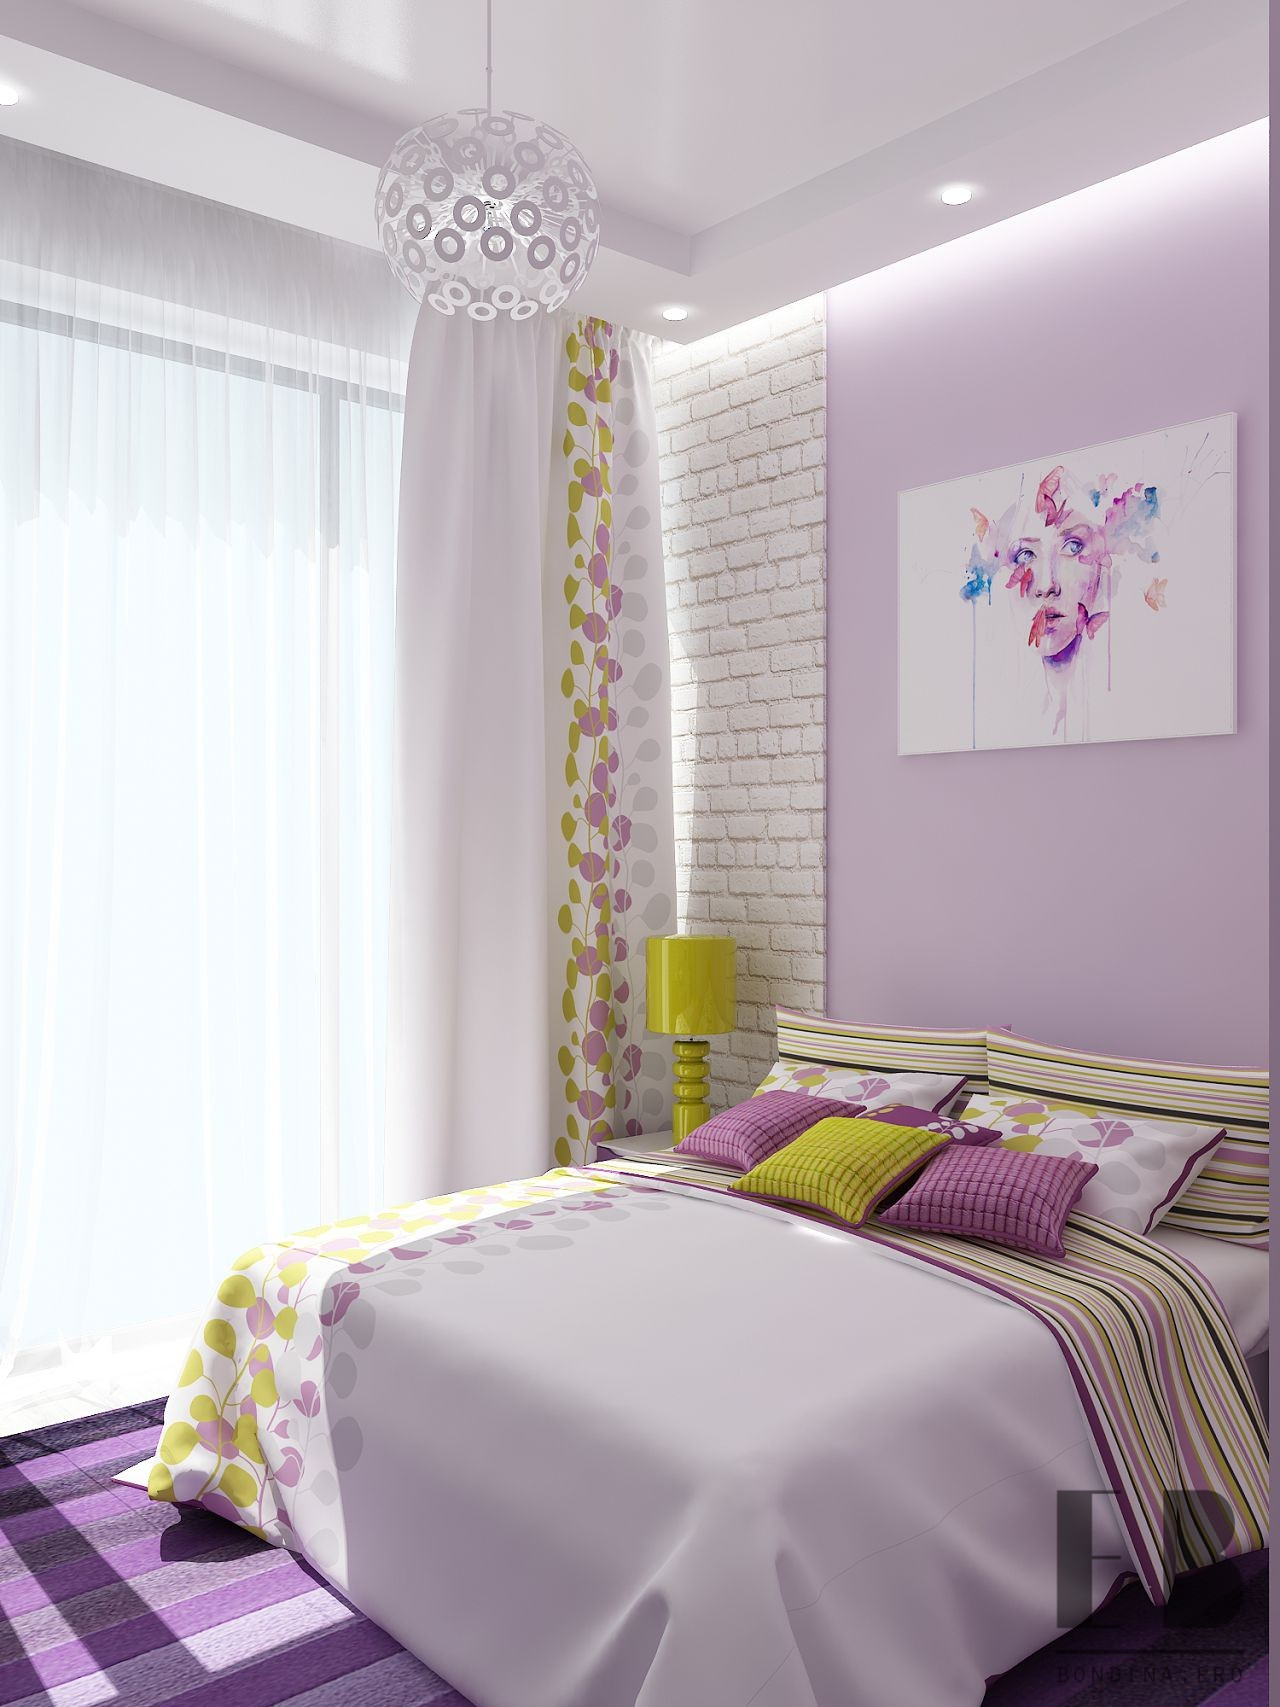 Bright bedroom interior design